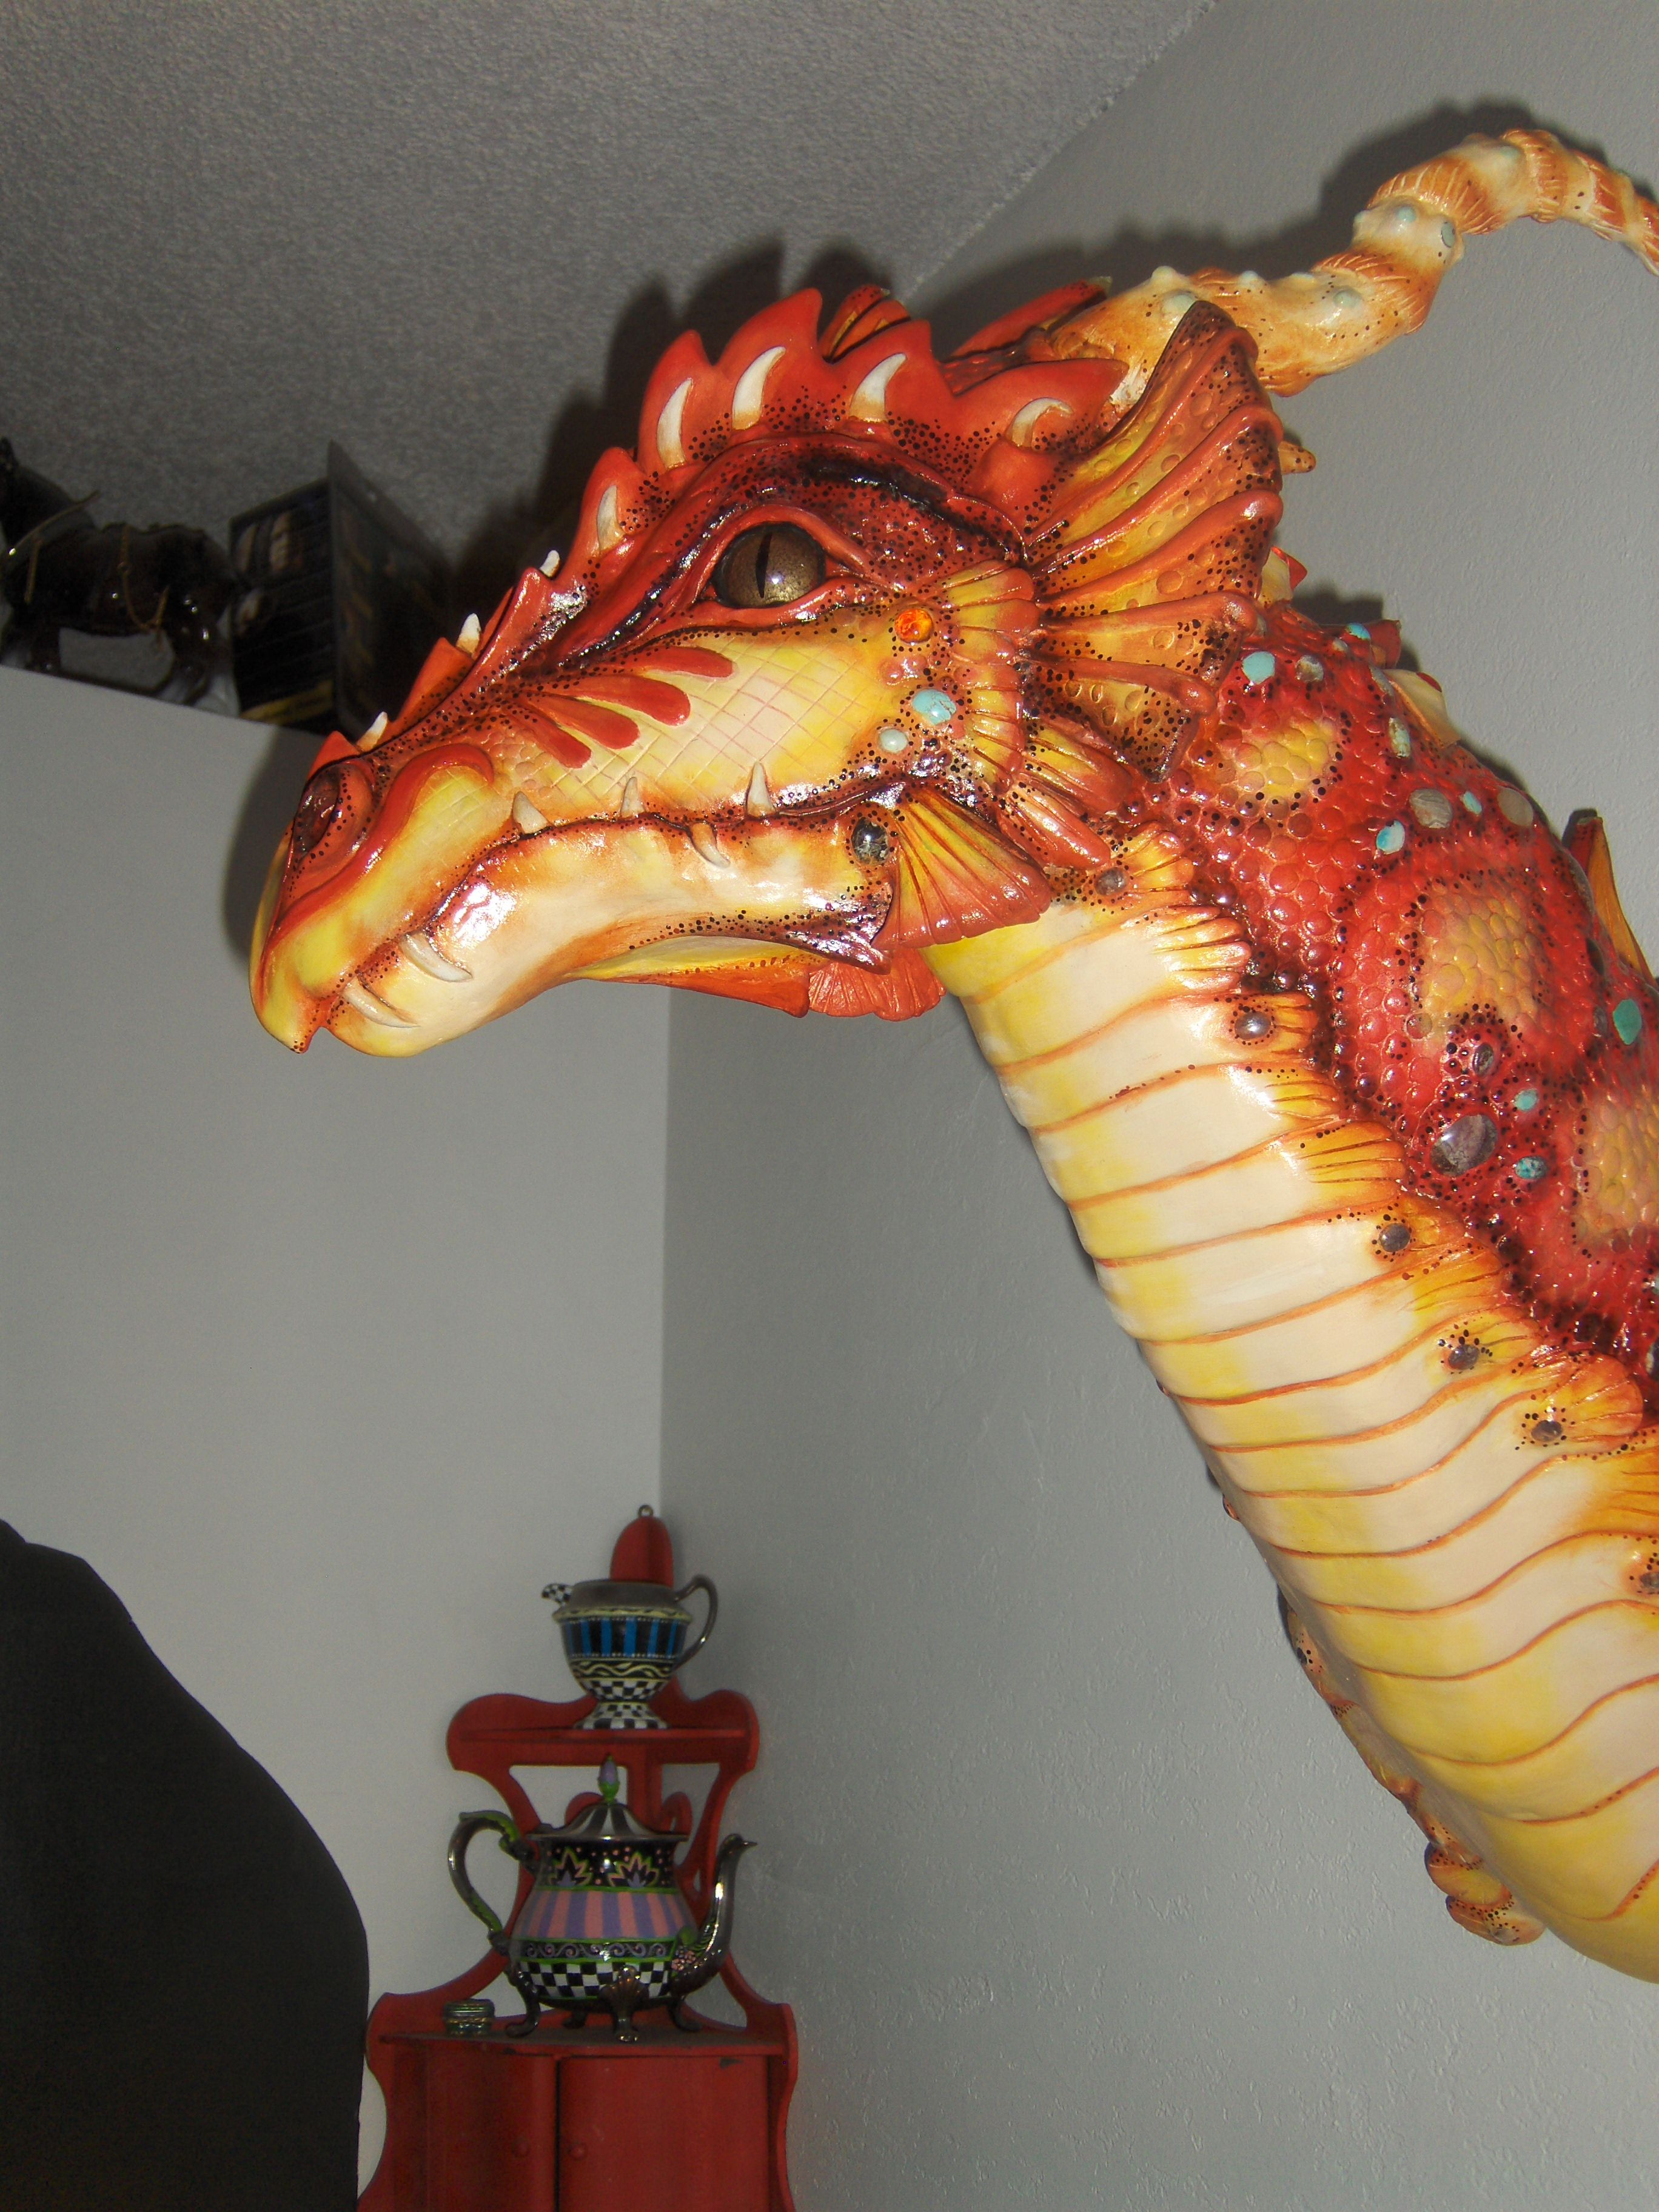 This is one of my air dry clay dragons. Air dry clay